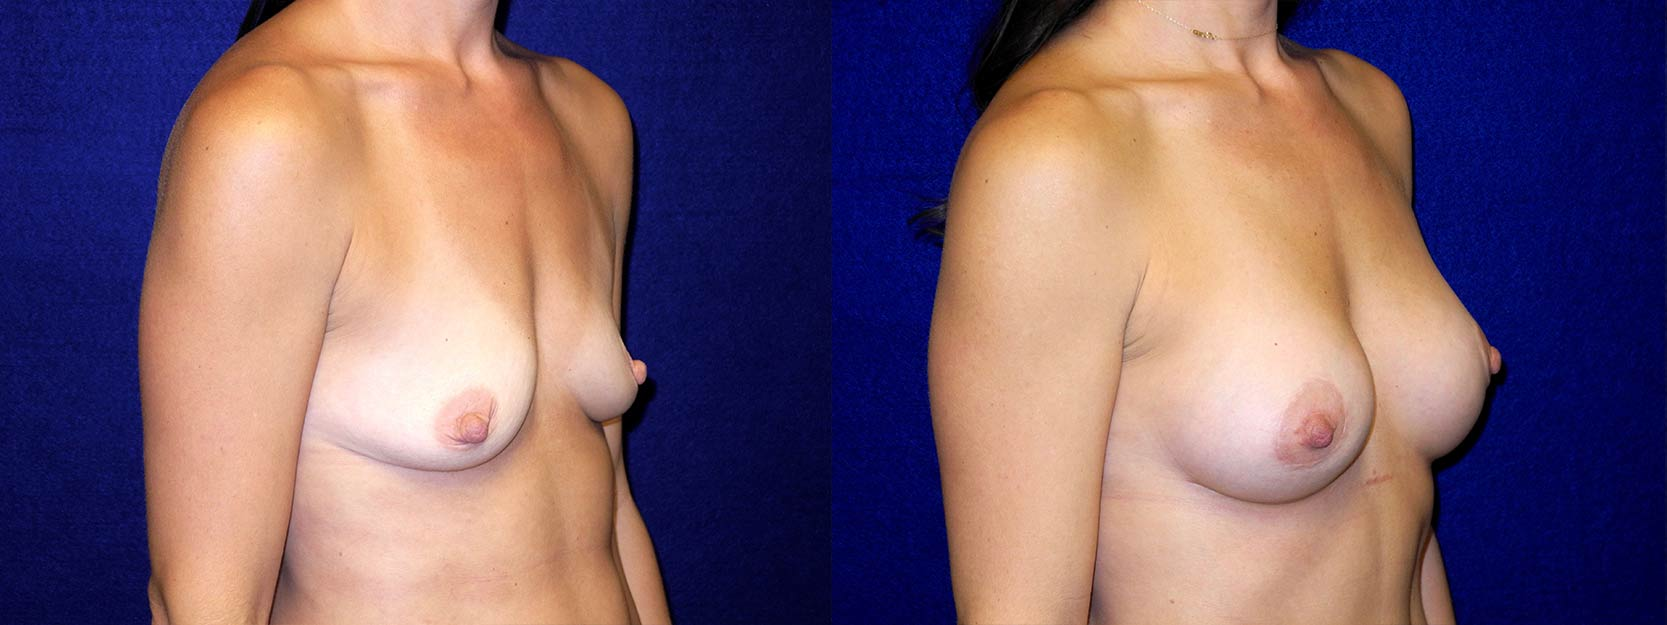 Right 3/4 View - Breast Augmentation with periareolar Lift After Pregnancy with Silicone Implants